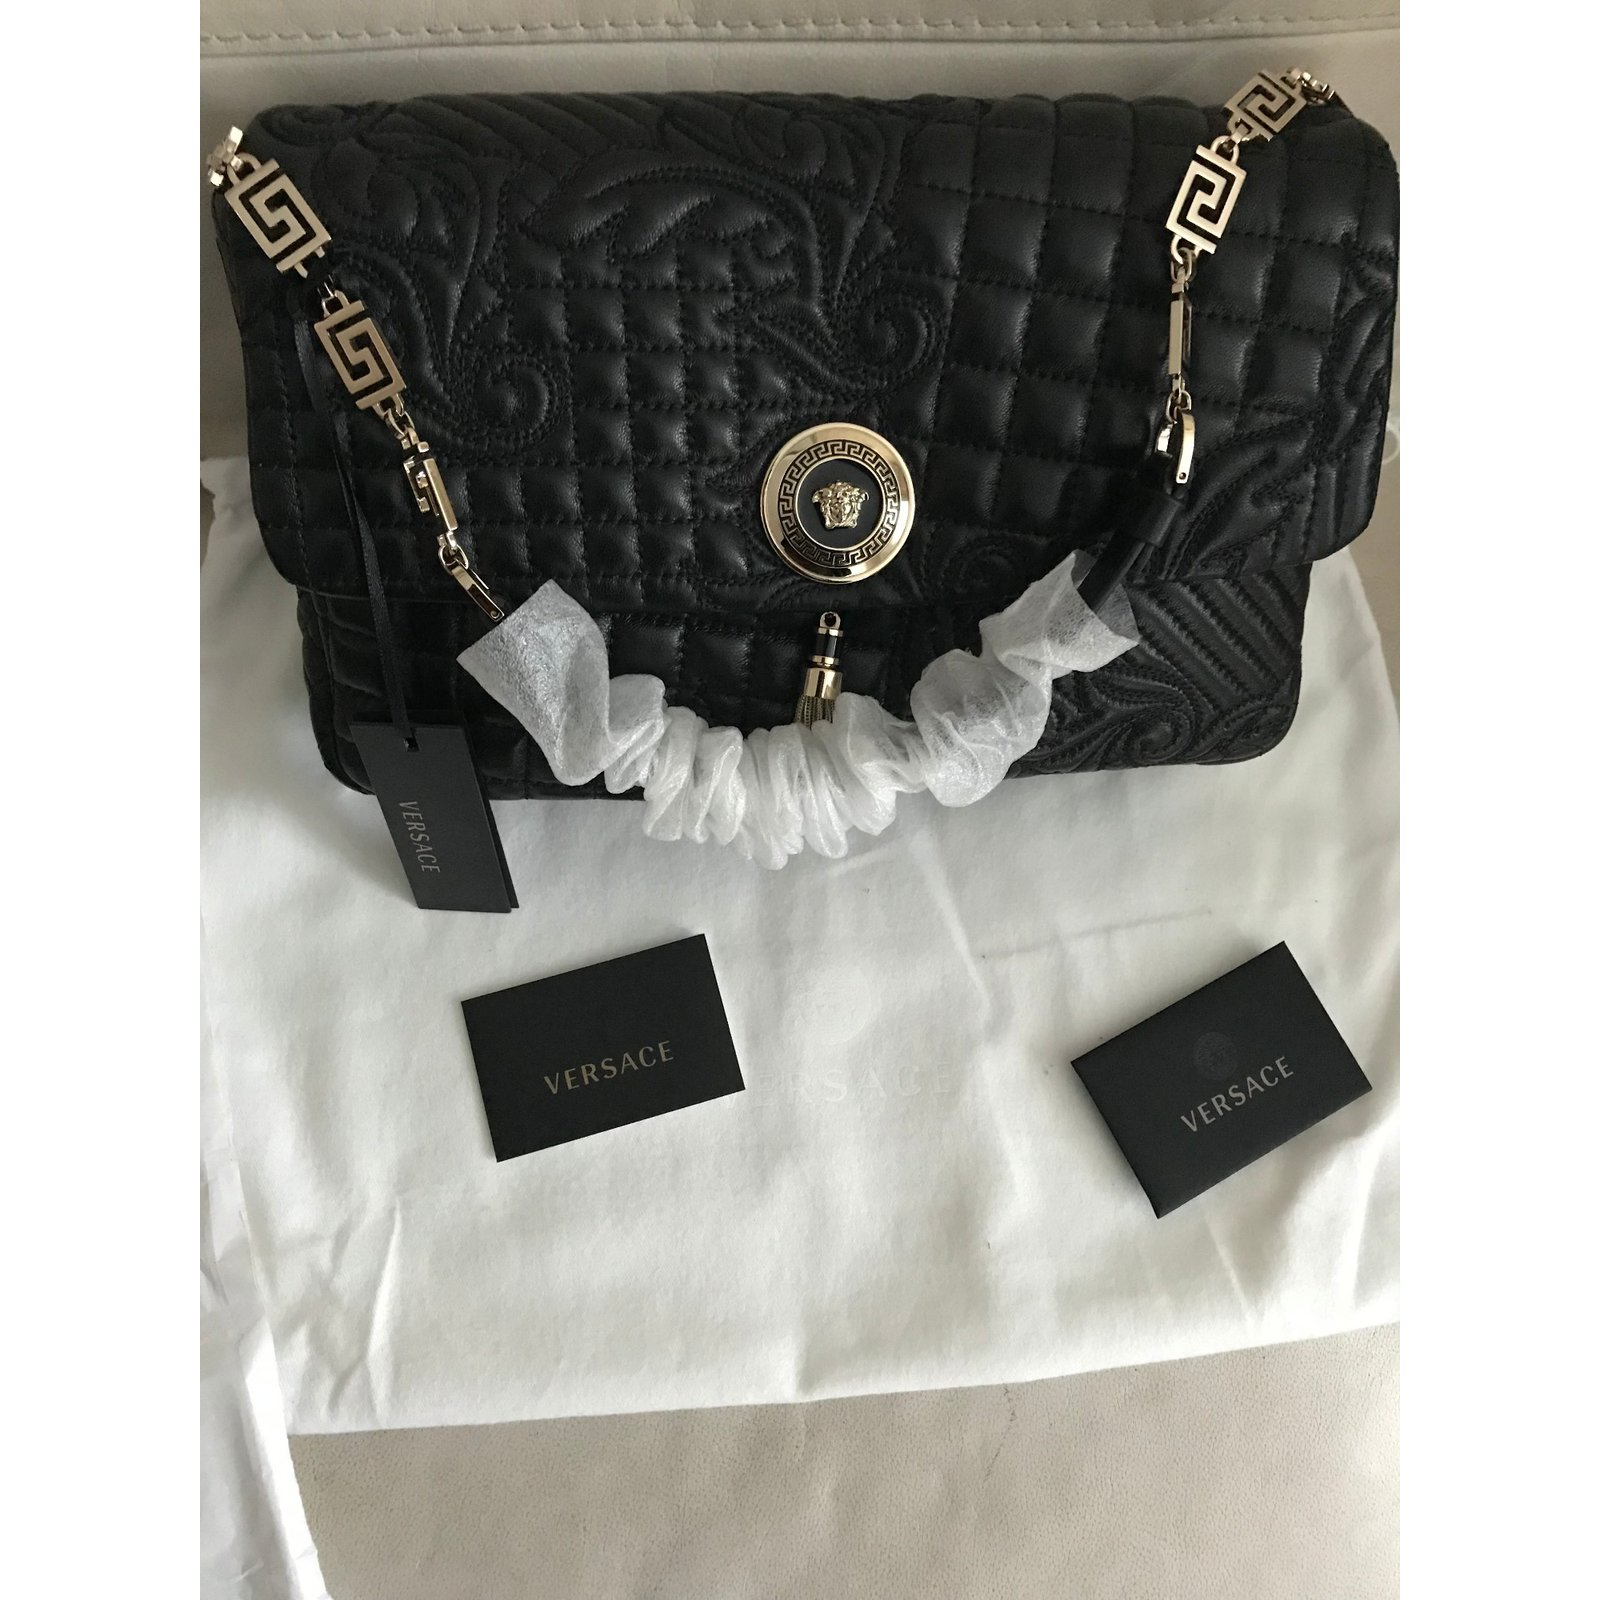 Handbags Gianni Versace Facebook Pin This